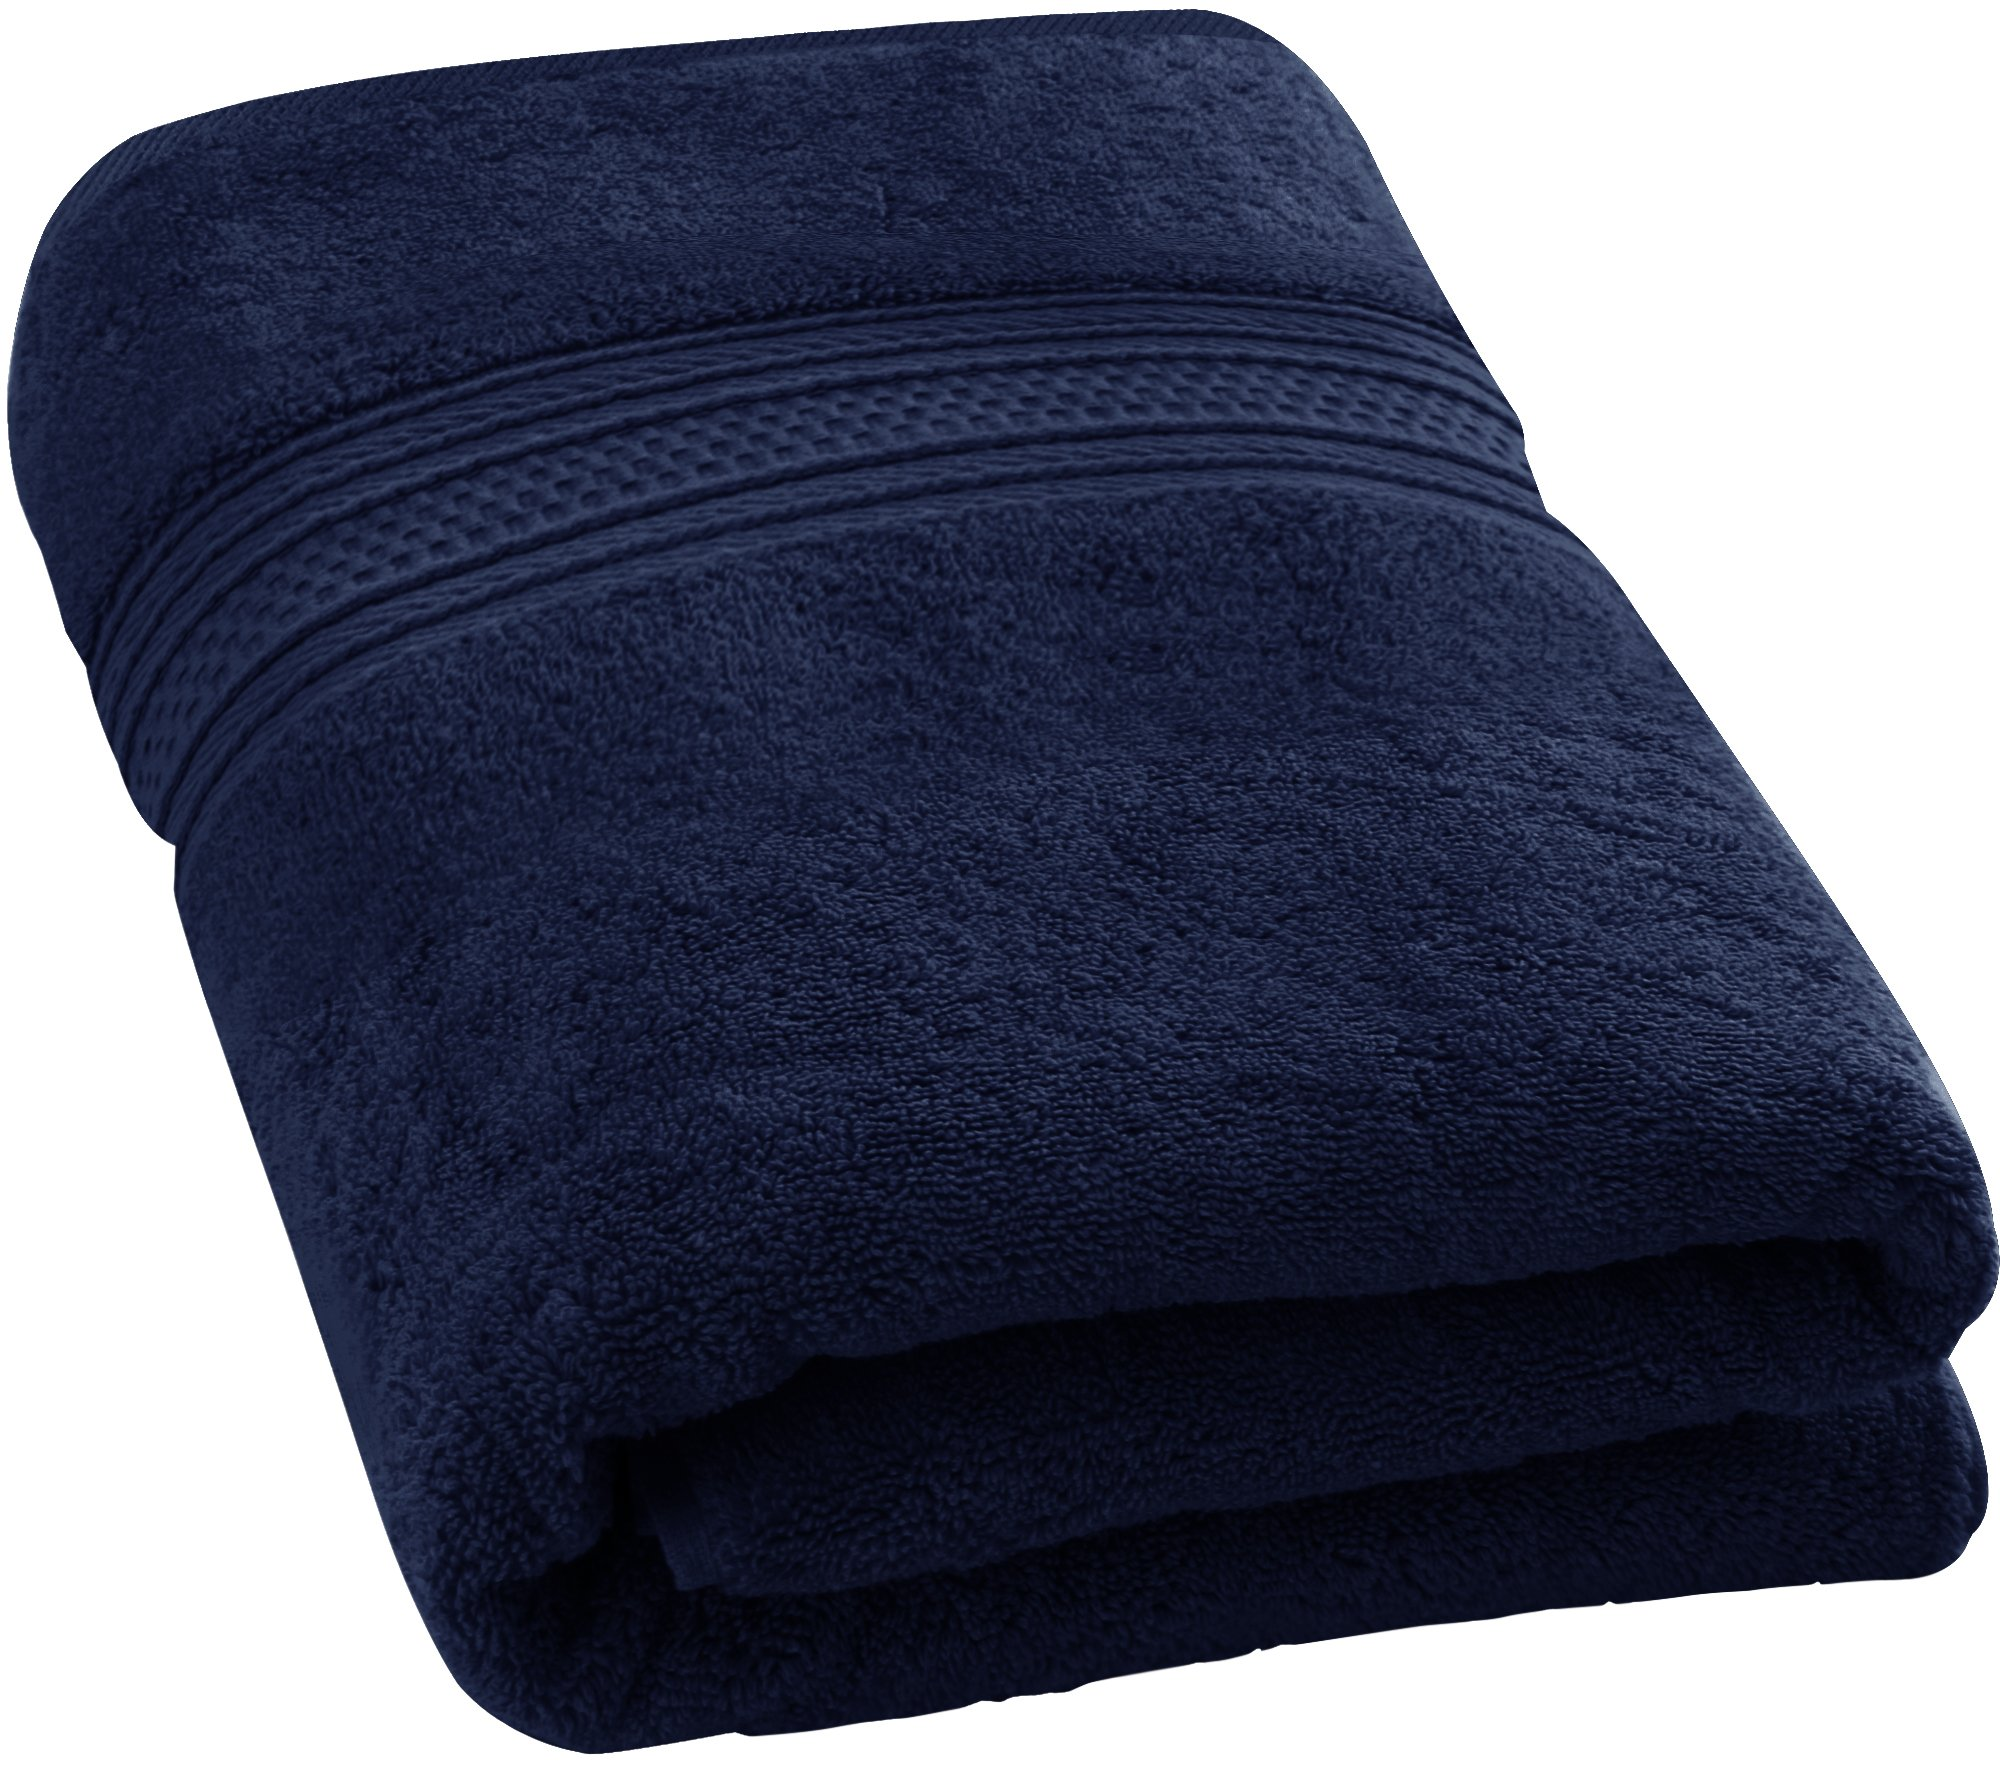 Utopia Towels 700 GSM Premium Cotton Extra Large Bath Towel (35 X 70 Inches) Soft Luxury Bath Sheet, Navy Blue